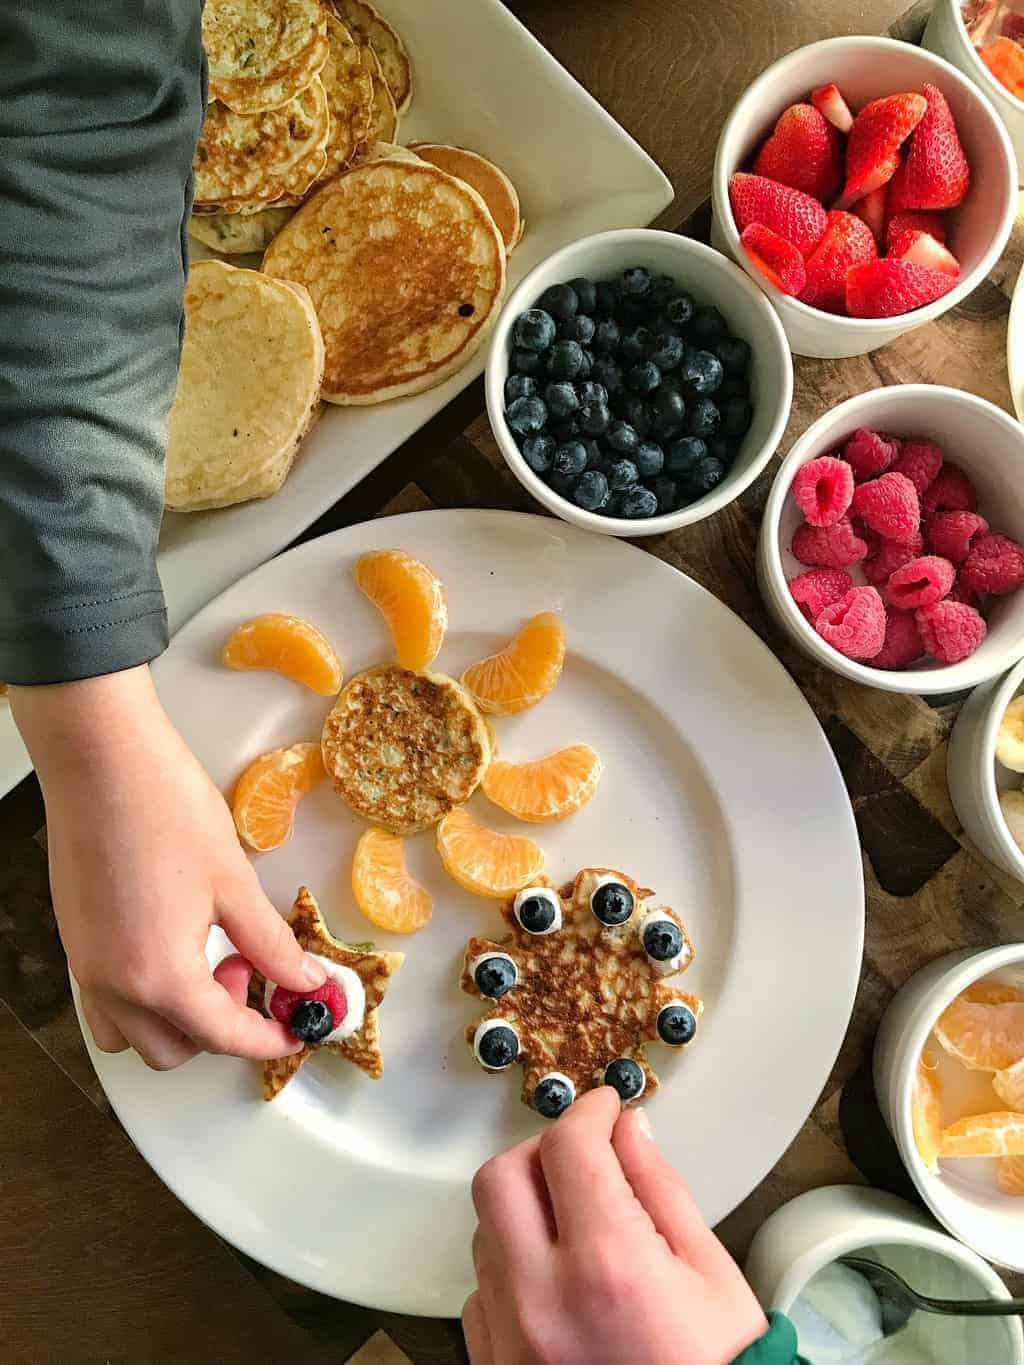 Fruit Pancakes, an easy recipe for kids showing hands decorating pancakes on a white plate with fruit.